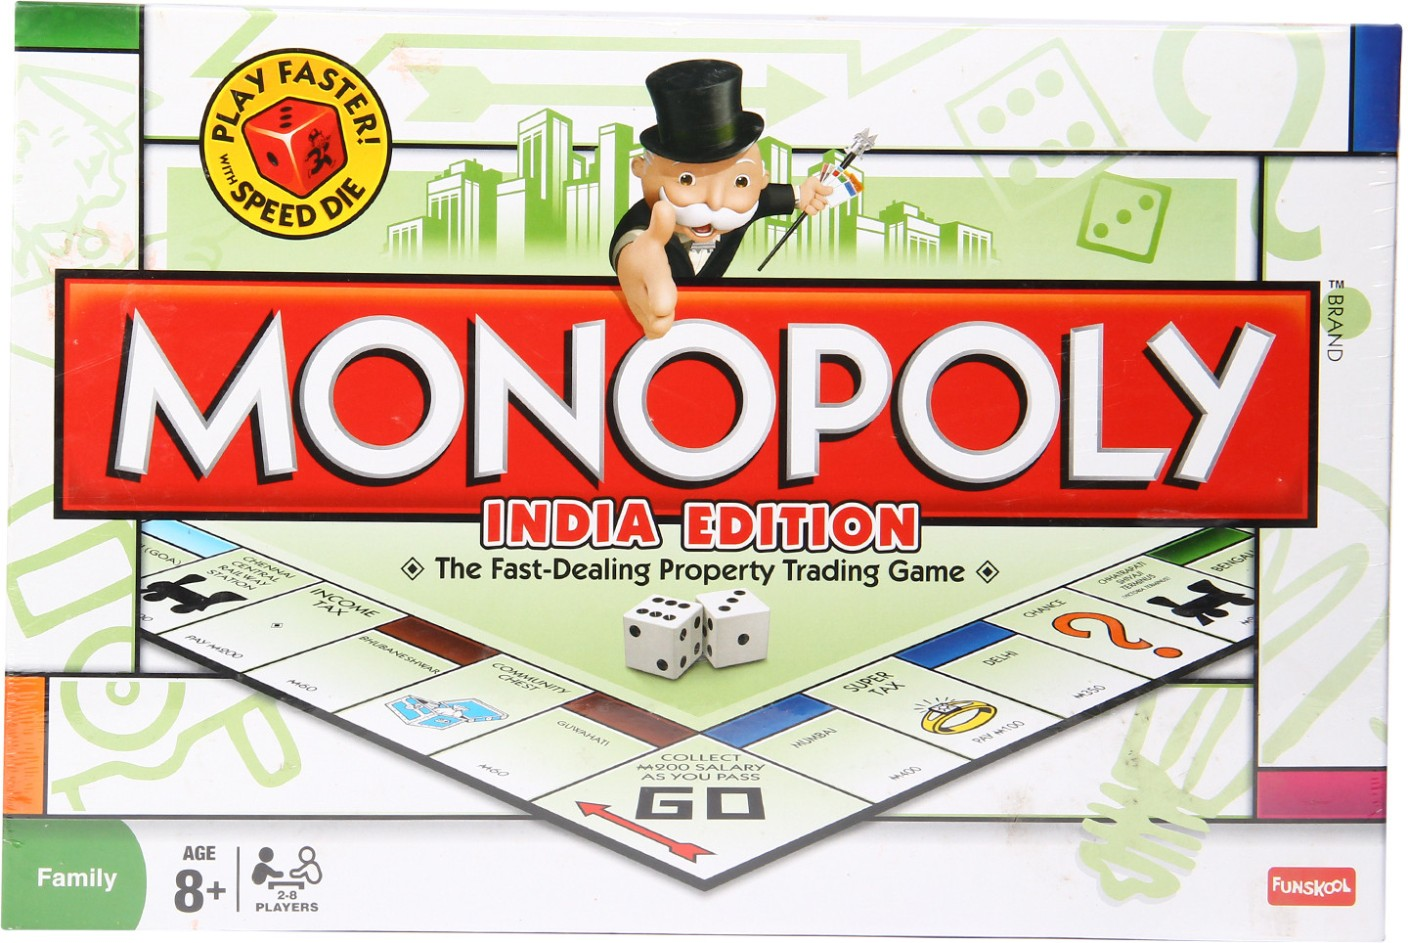 Can You Add Houses To Hotels In Monopoly